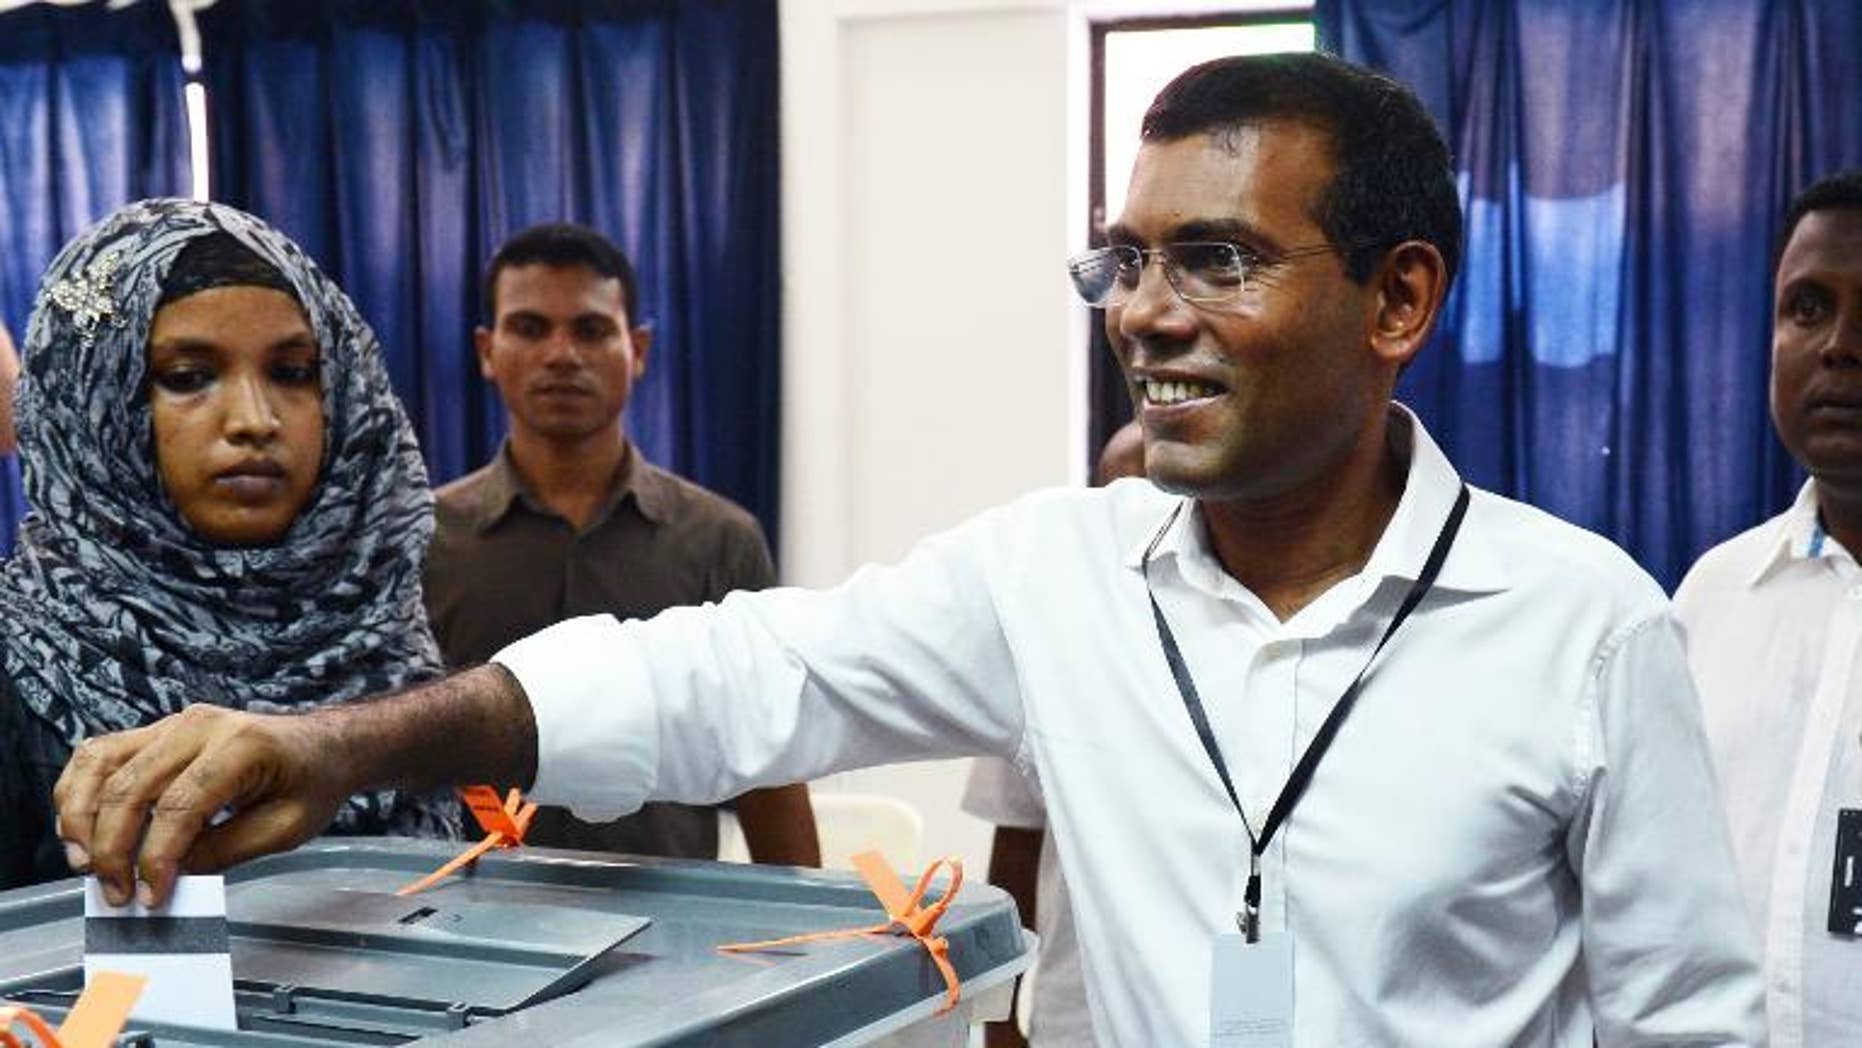 Maldivian former President and Presidential candidate Mohamed Nasheed smiles as he casts his vote at a local polling station in Male on September 7, 2013.